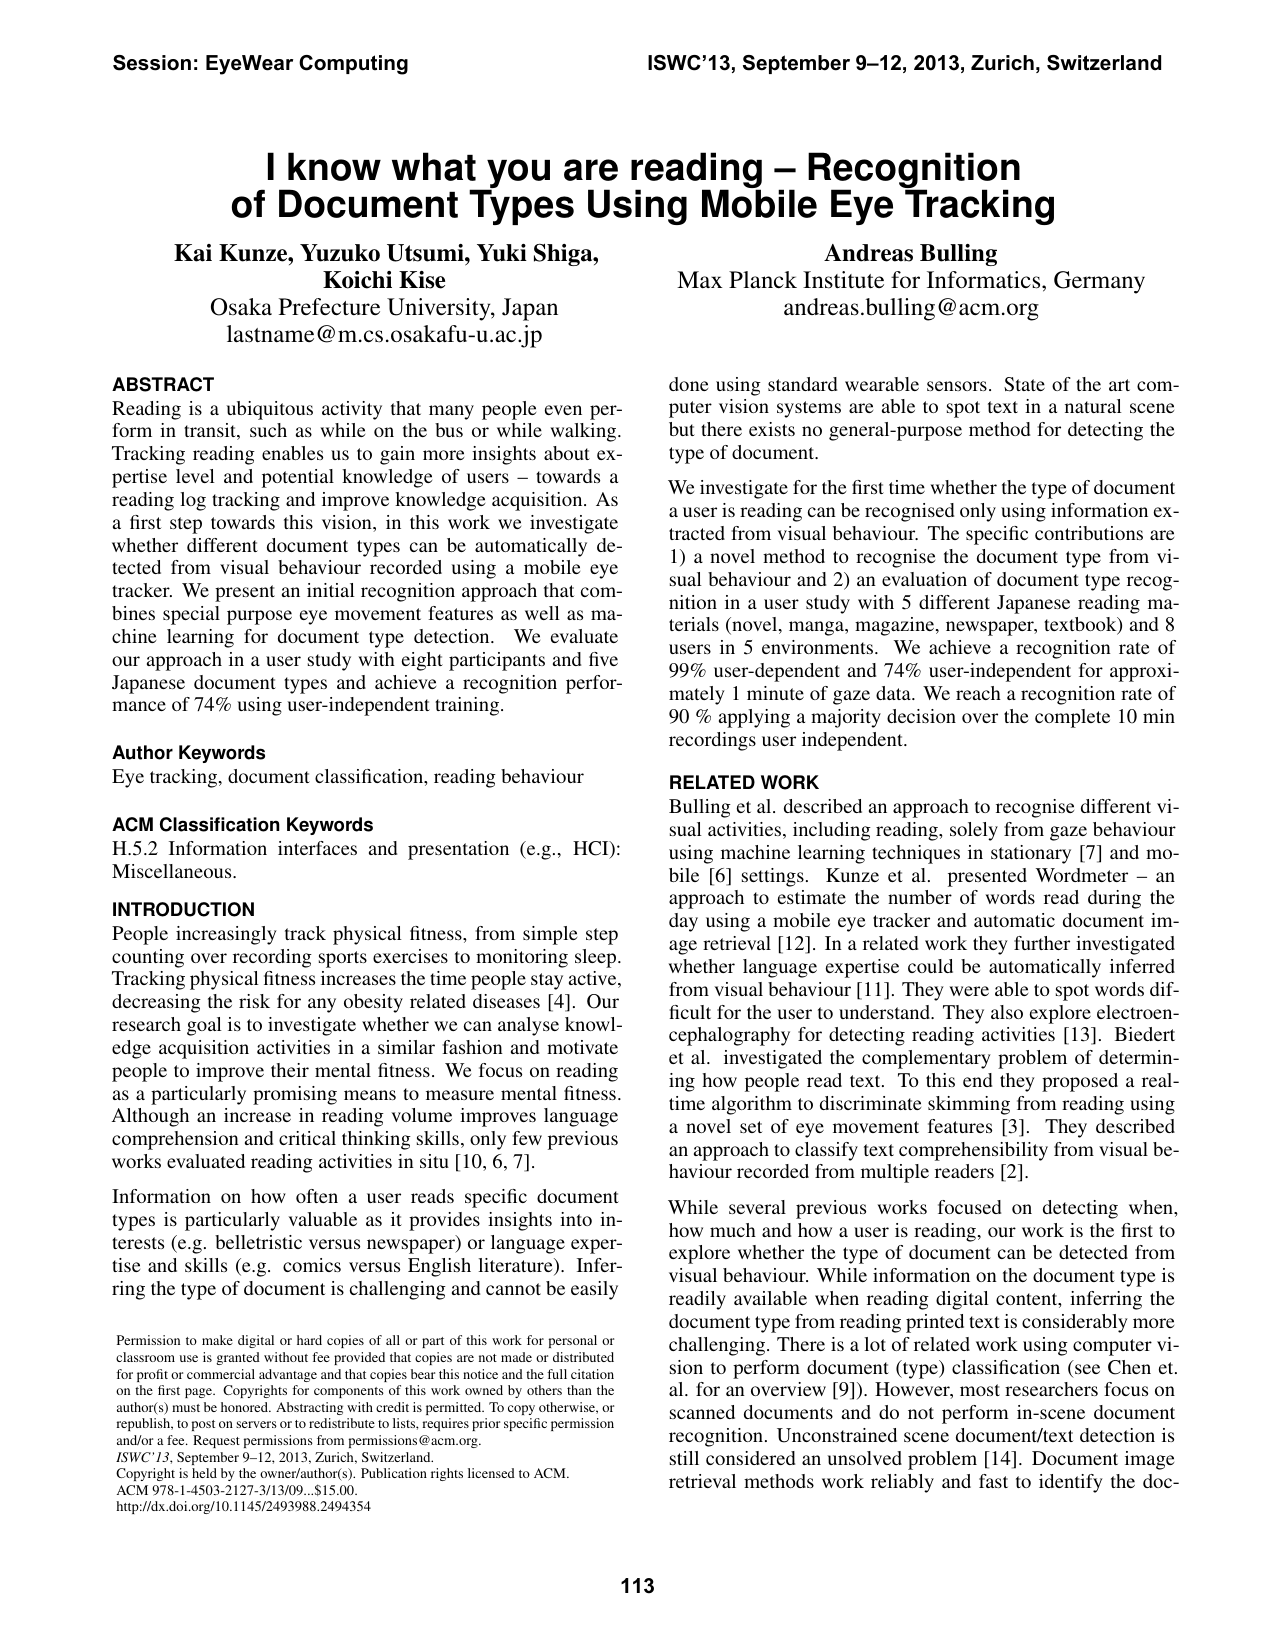 I know what you are reading – Recognition of document types using mobile eye tracking